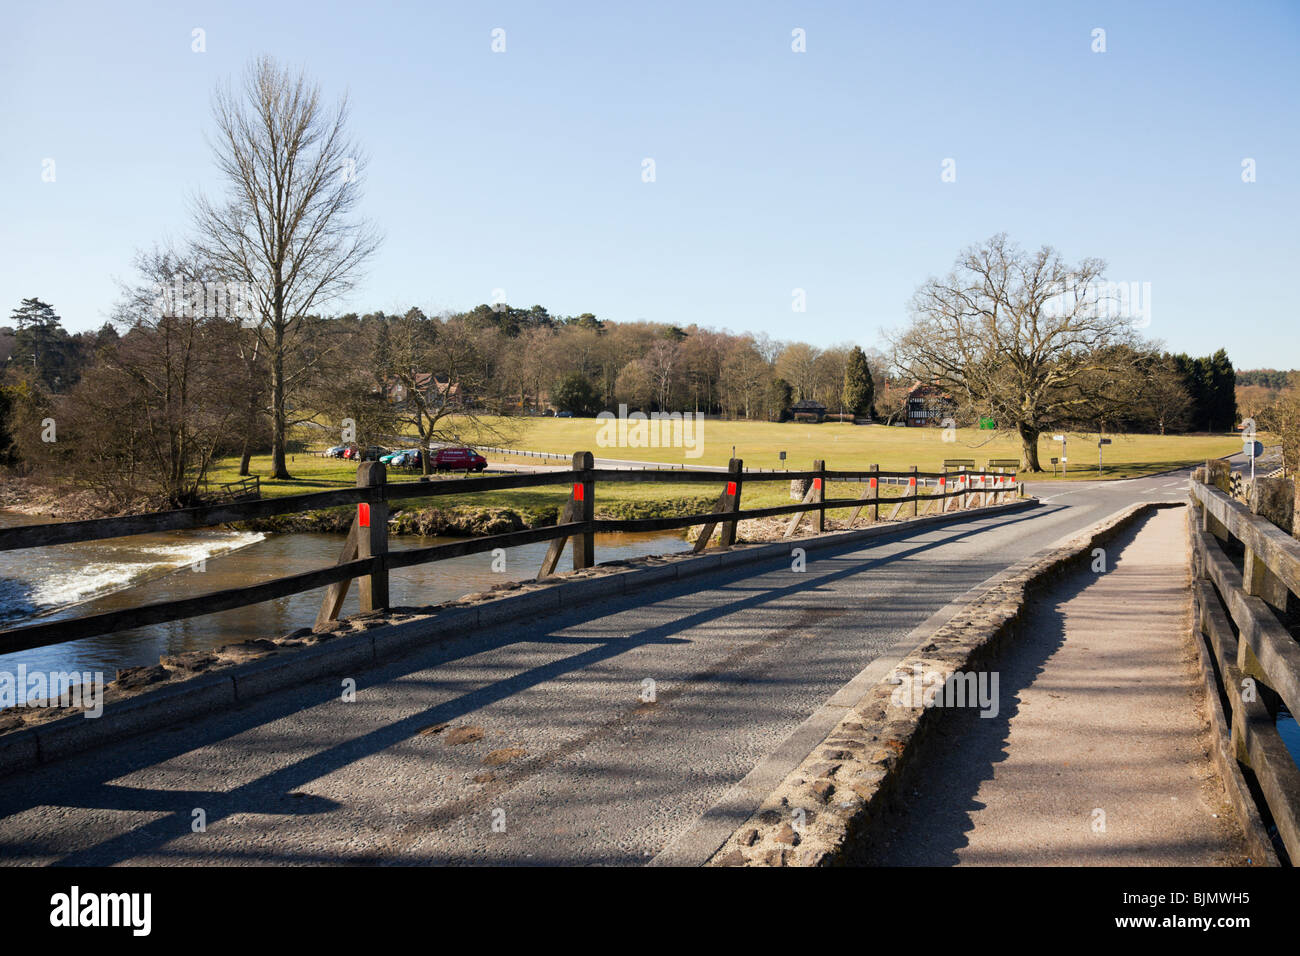 Tilford, Surrey, England, UK, Europe. View to village green along the narrow road bridge crossing the River Wey. - Stock Image